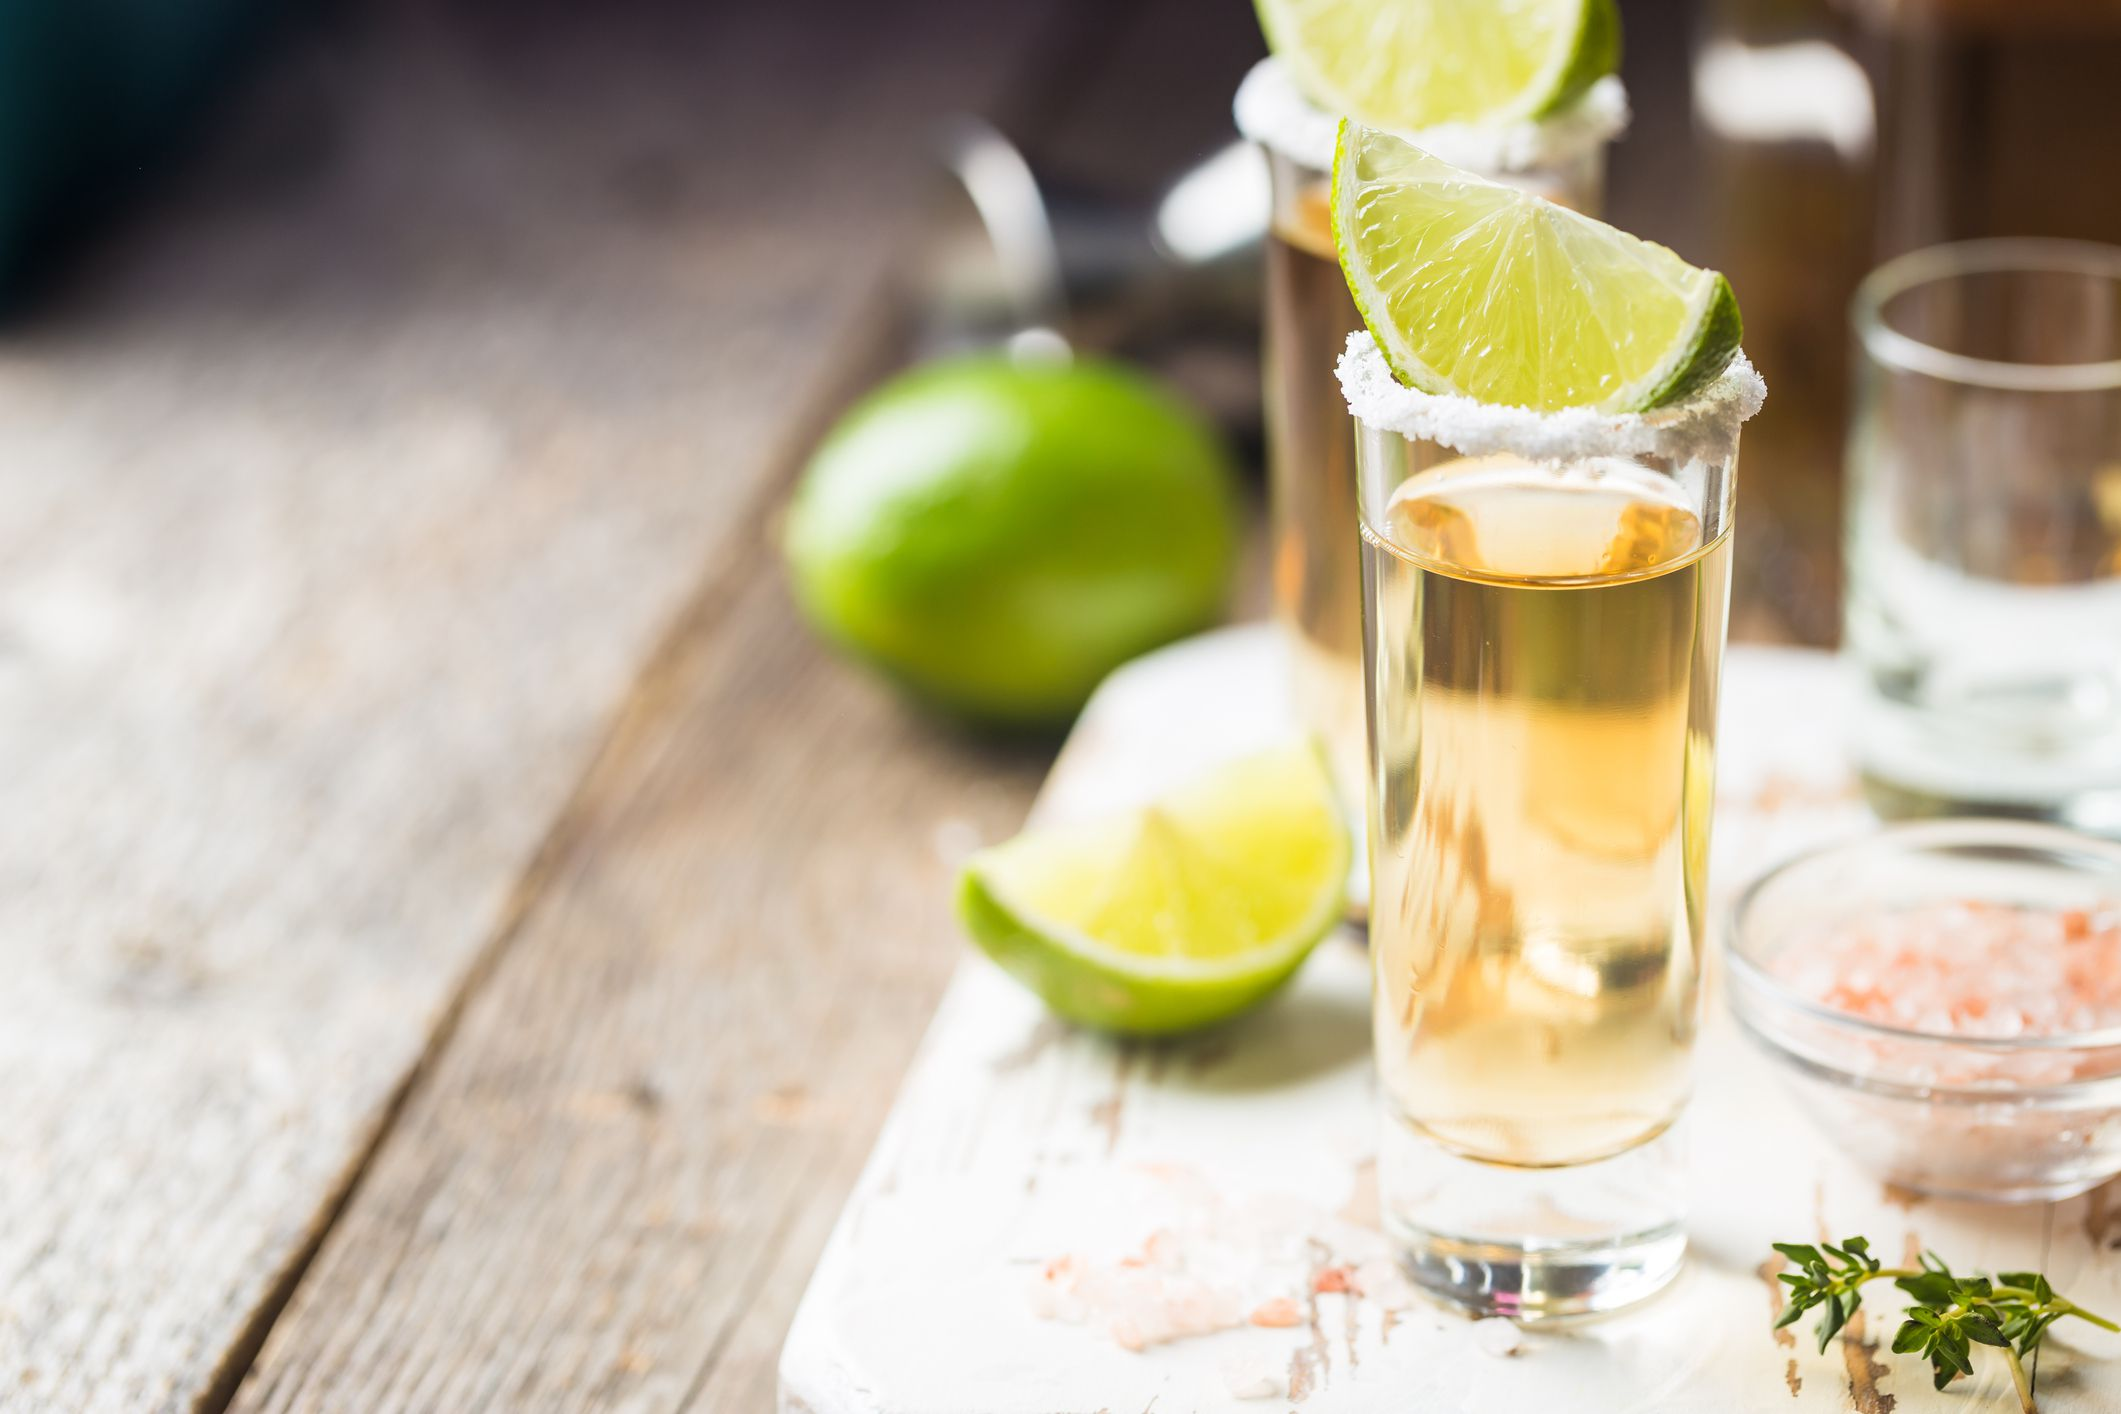 Global Tequila Market 2020 Recent Developments – Jose Cuervo, Sauza, Patrón, Juarez, 1800 Tequila, El Jimador Family, Don Julio, Familia Camarena Tequila, Herradura – The Pinstripe Empire photo